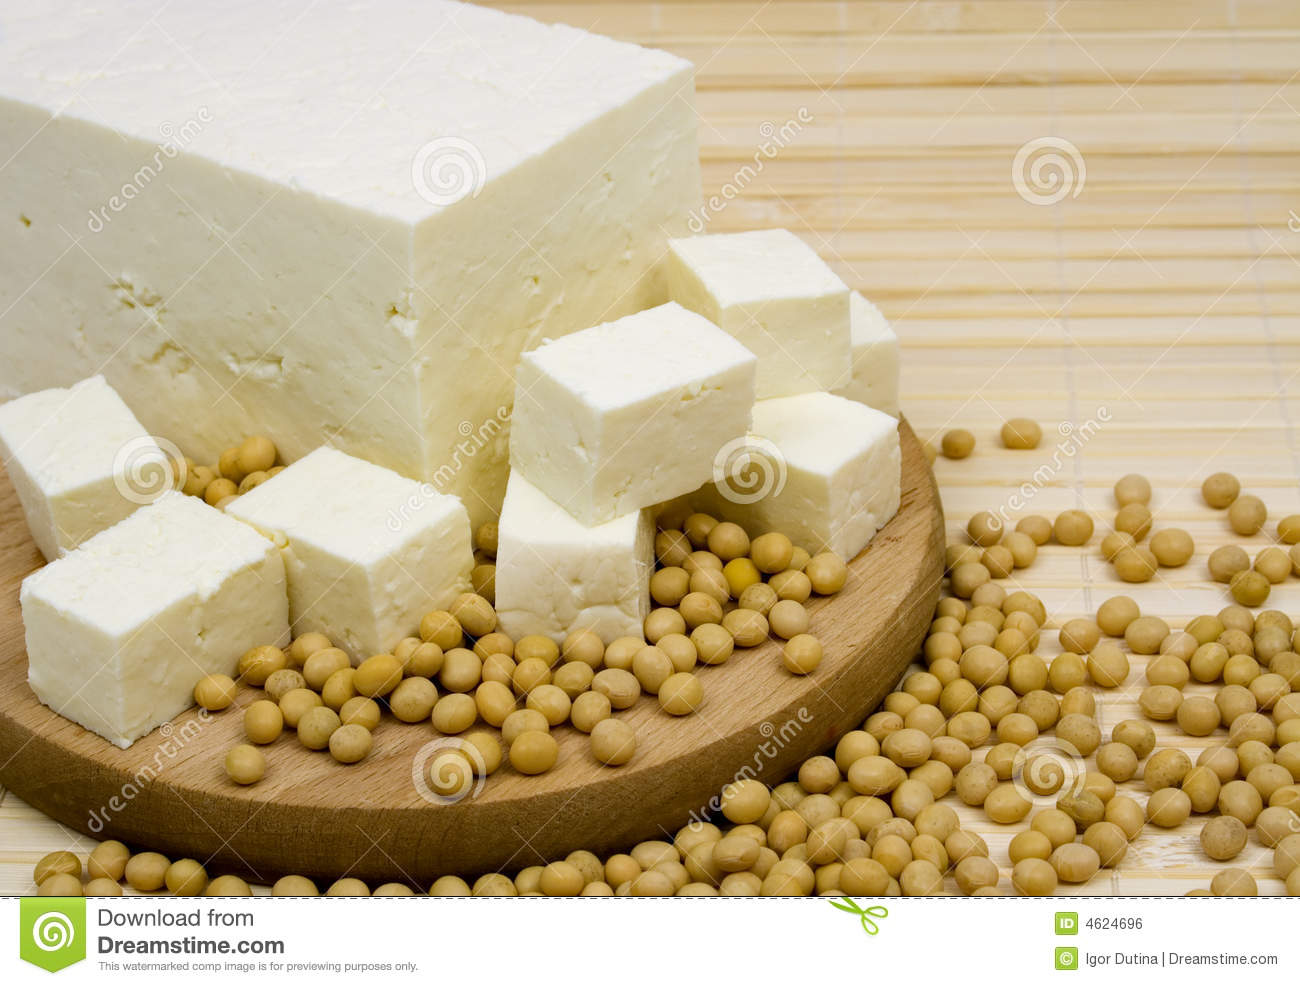 Tofu Cheese And Soy Beans Royalty Free Stock Image - Image: 4624696